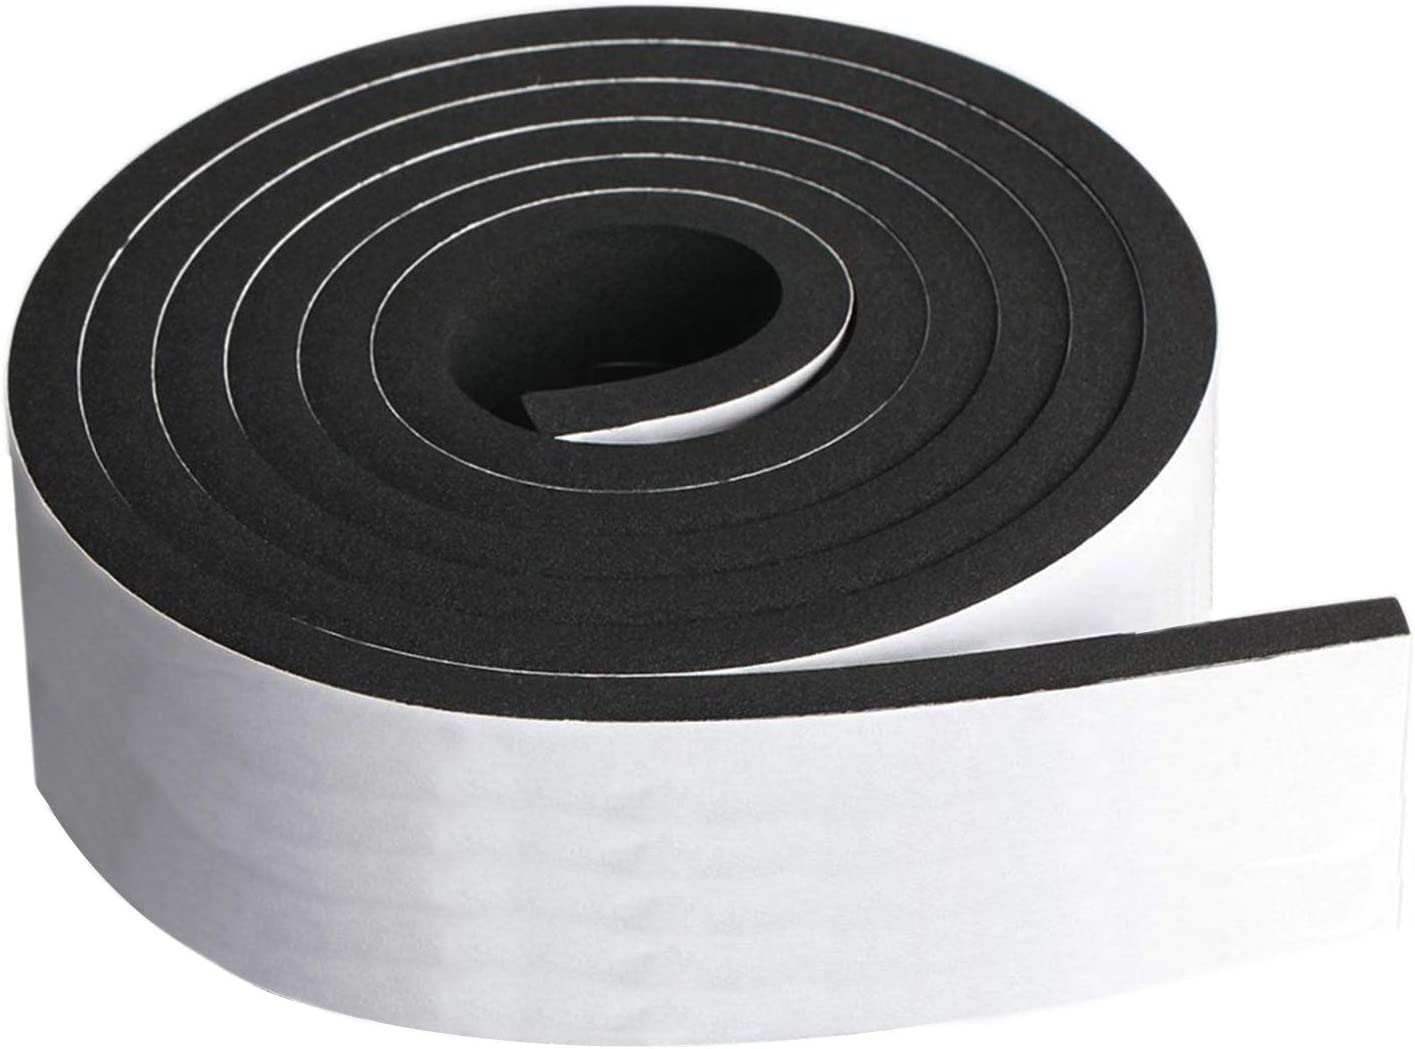 """Neoprene Foam Strip Roll by Dualplex, 3"""" Wide x 10' Long 1/4"""" Thick, Weather Seal High Density Stripping with Adhesive Backing – Weather Strip Roll Insulation Foam Strips"""